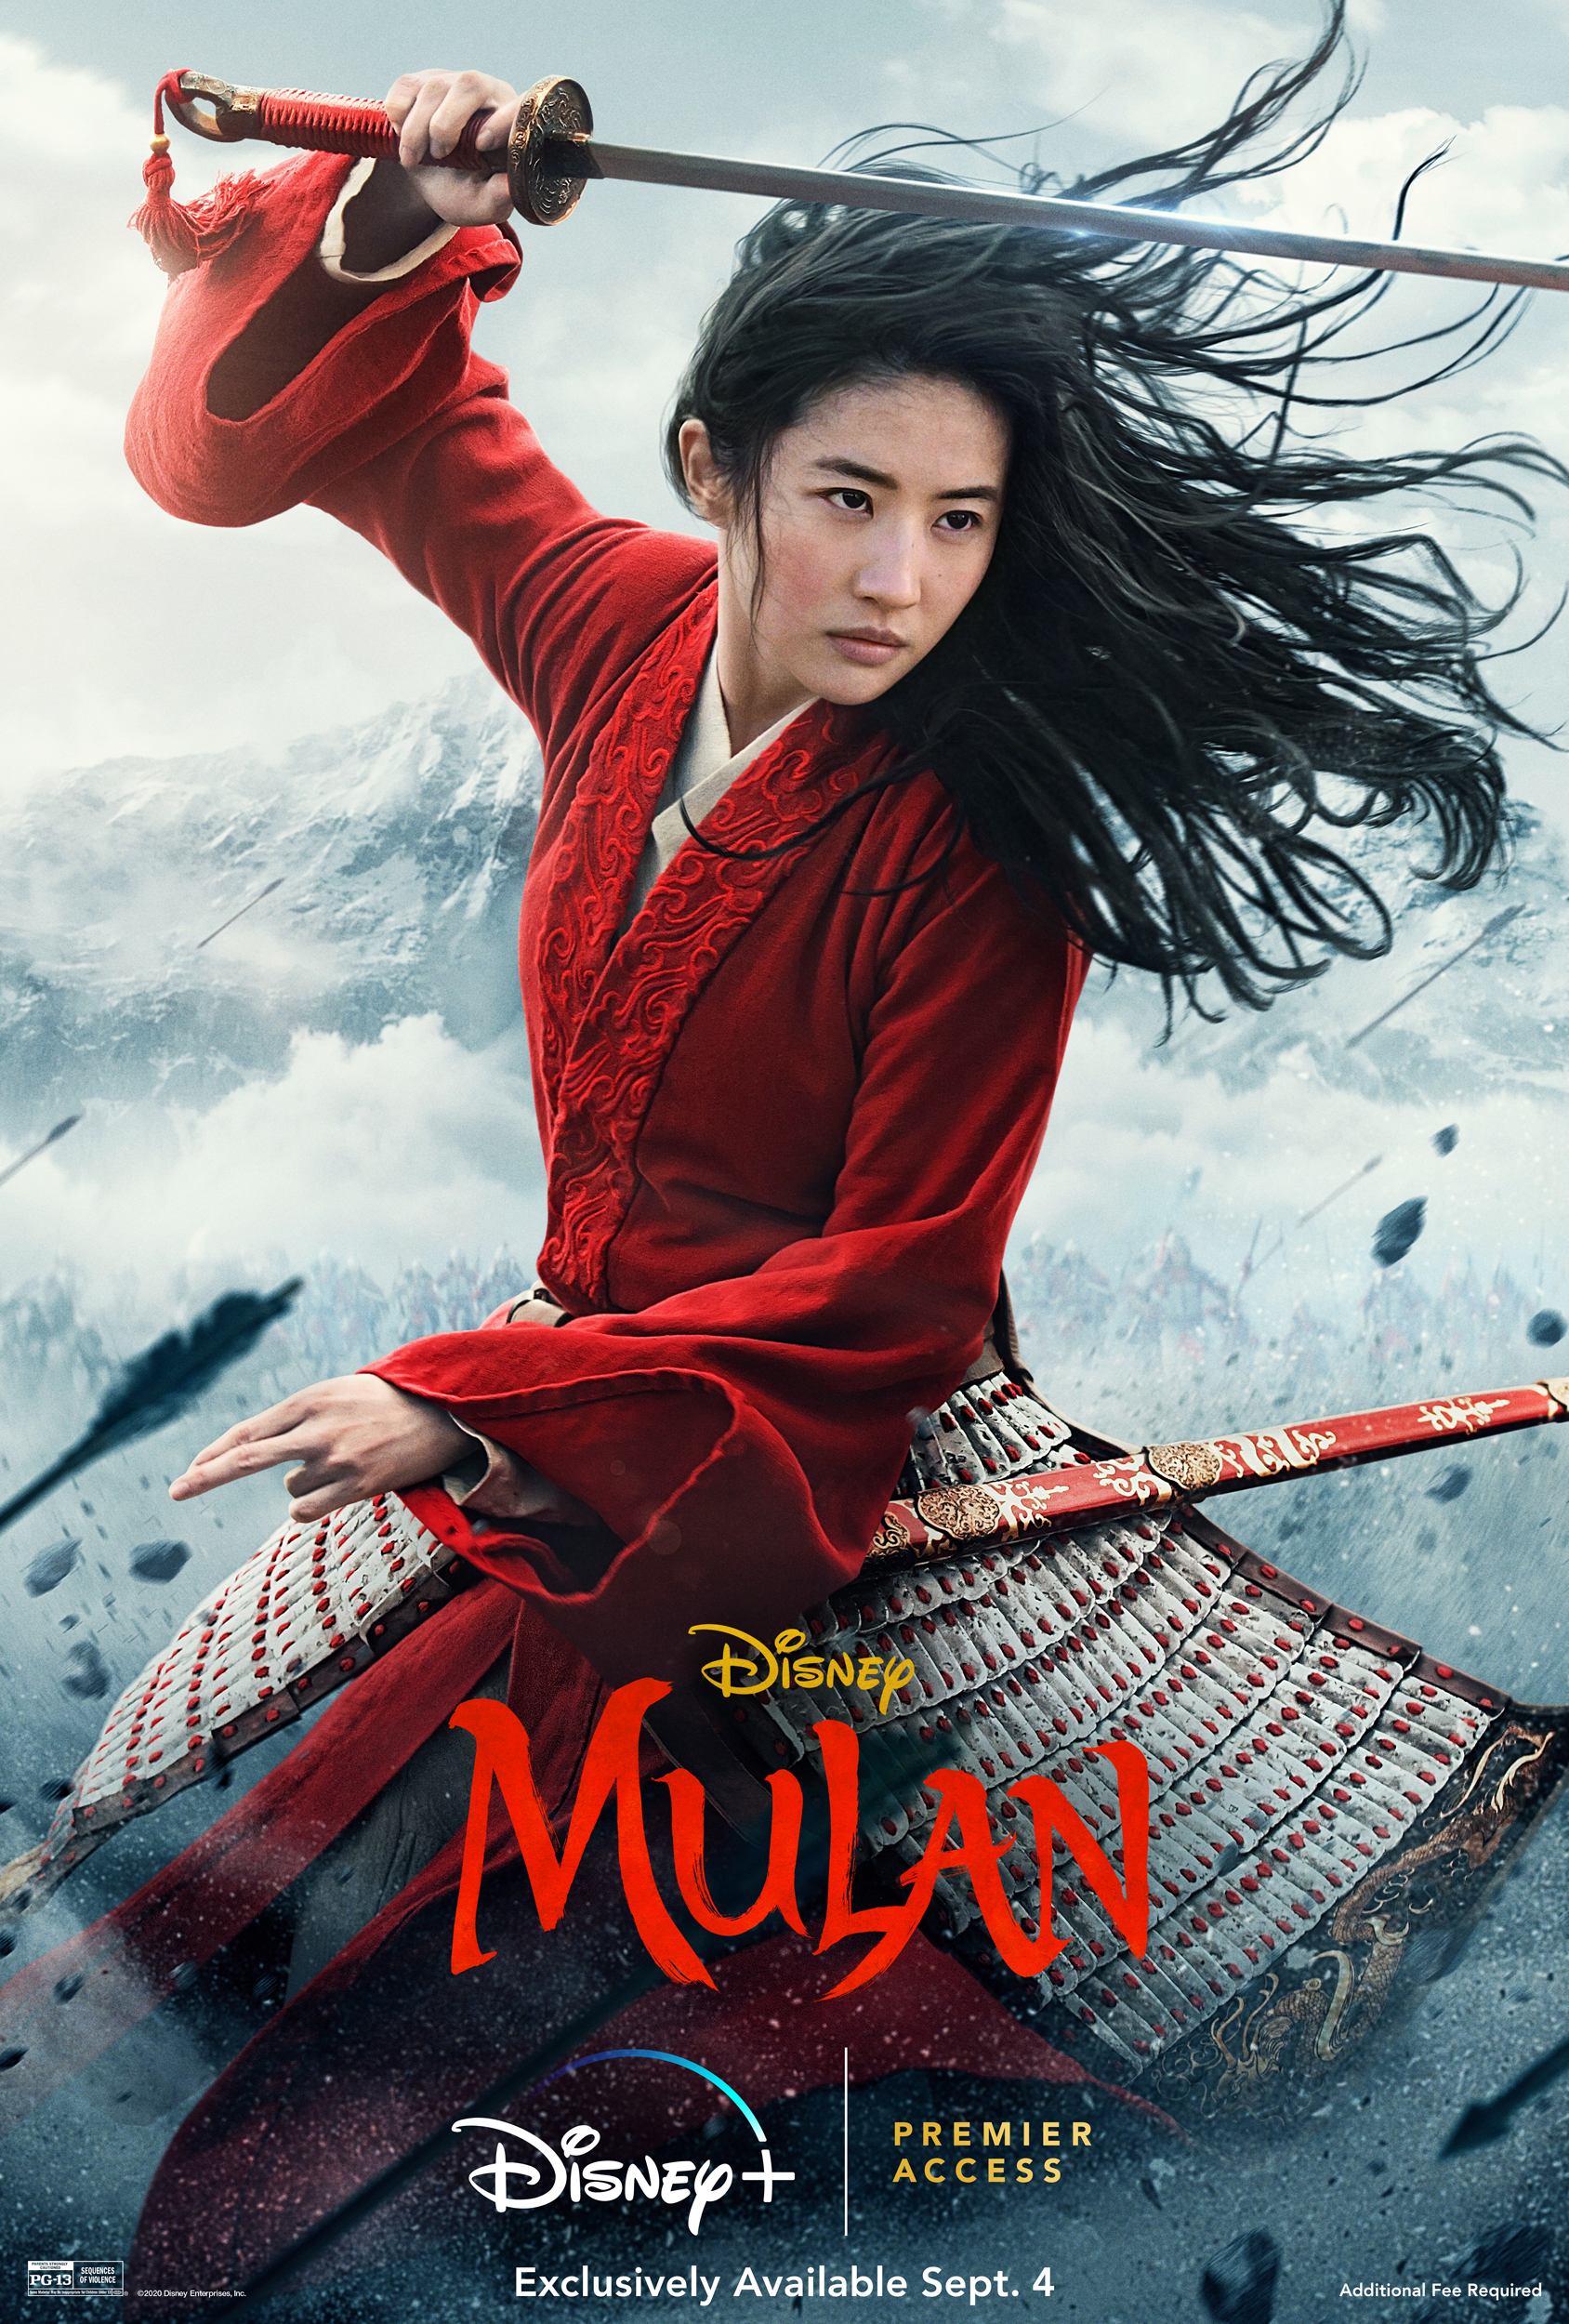 Mulan review: Disney's latest live action is a roundhouse kick to the feels